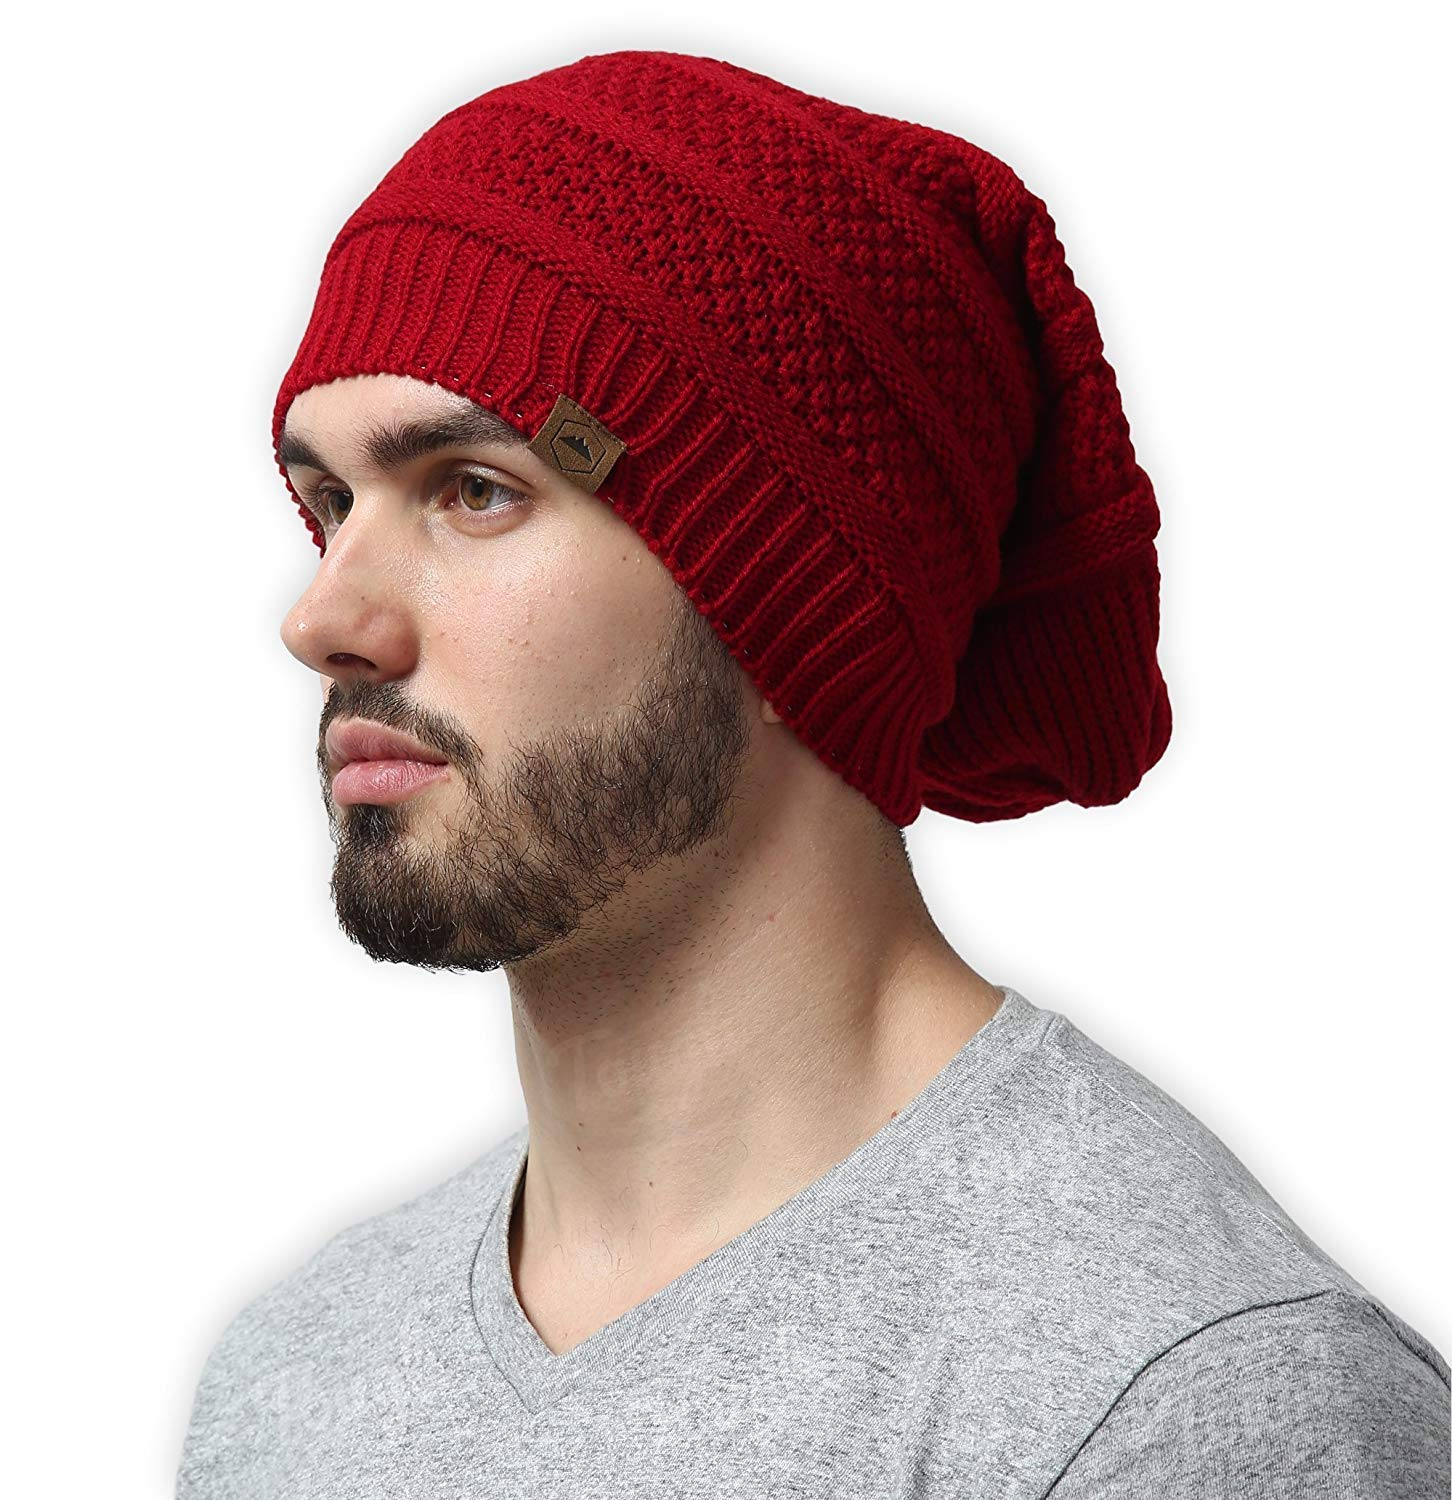 102a4567a21 Top Cool Beanies for Men in 2019 - Trendy Men s Beanie Hats for Winter